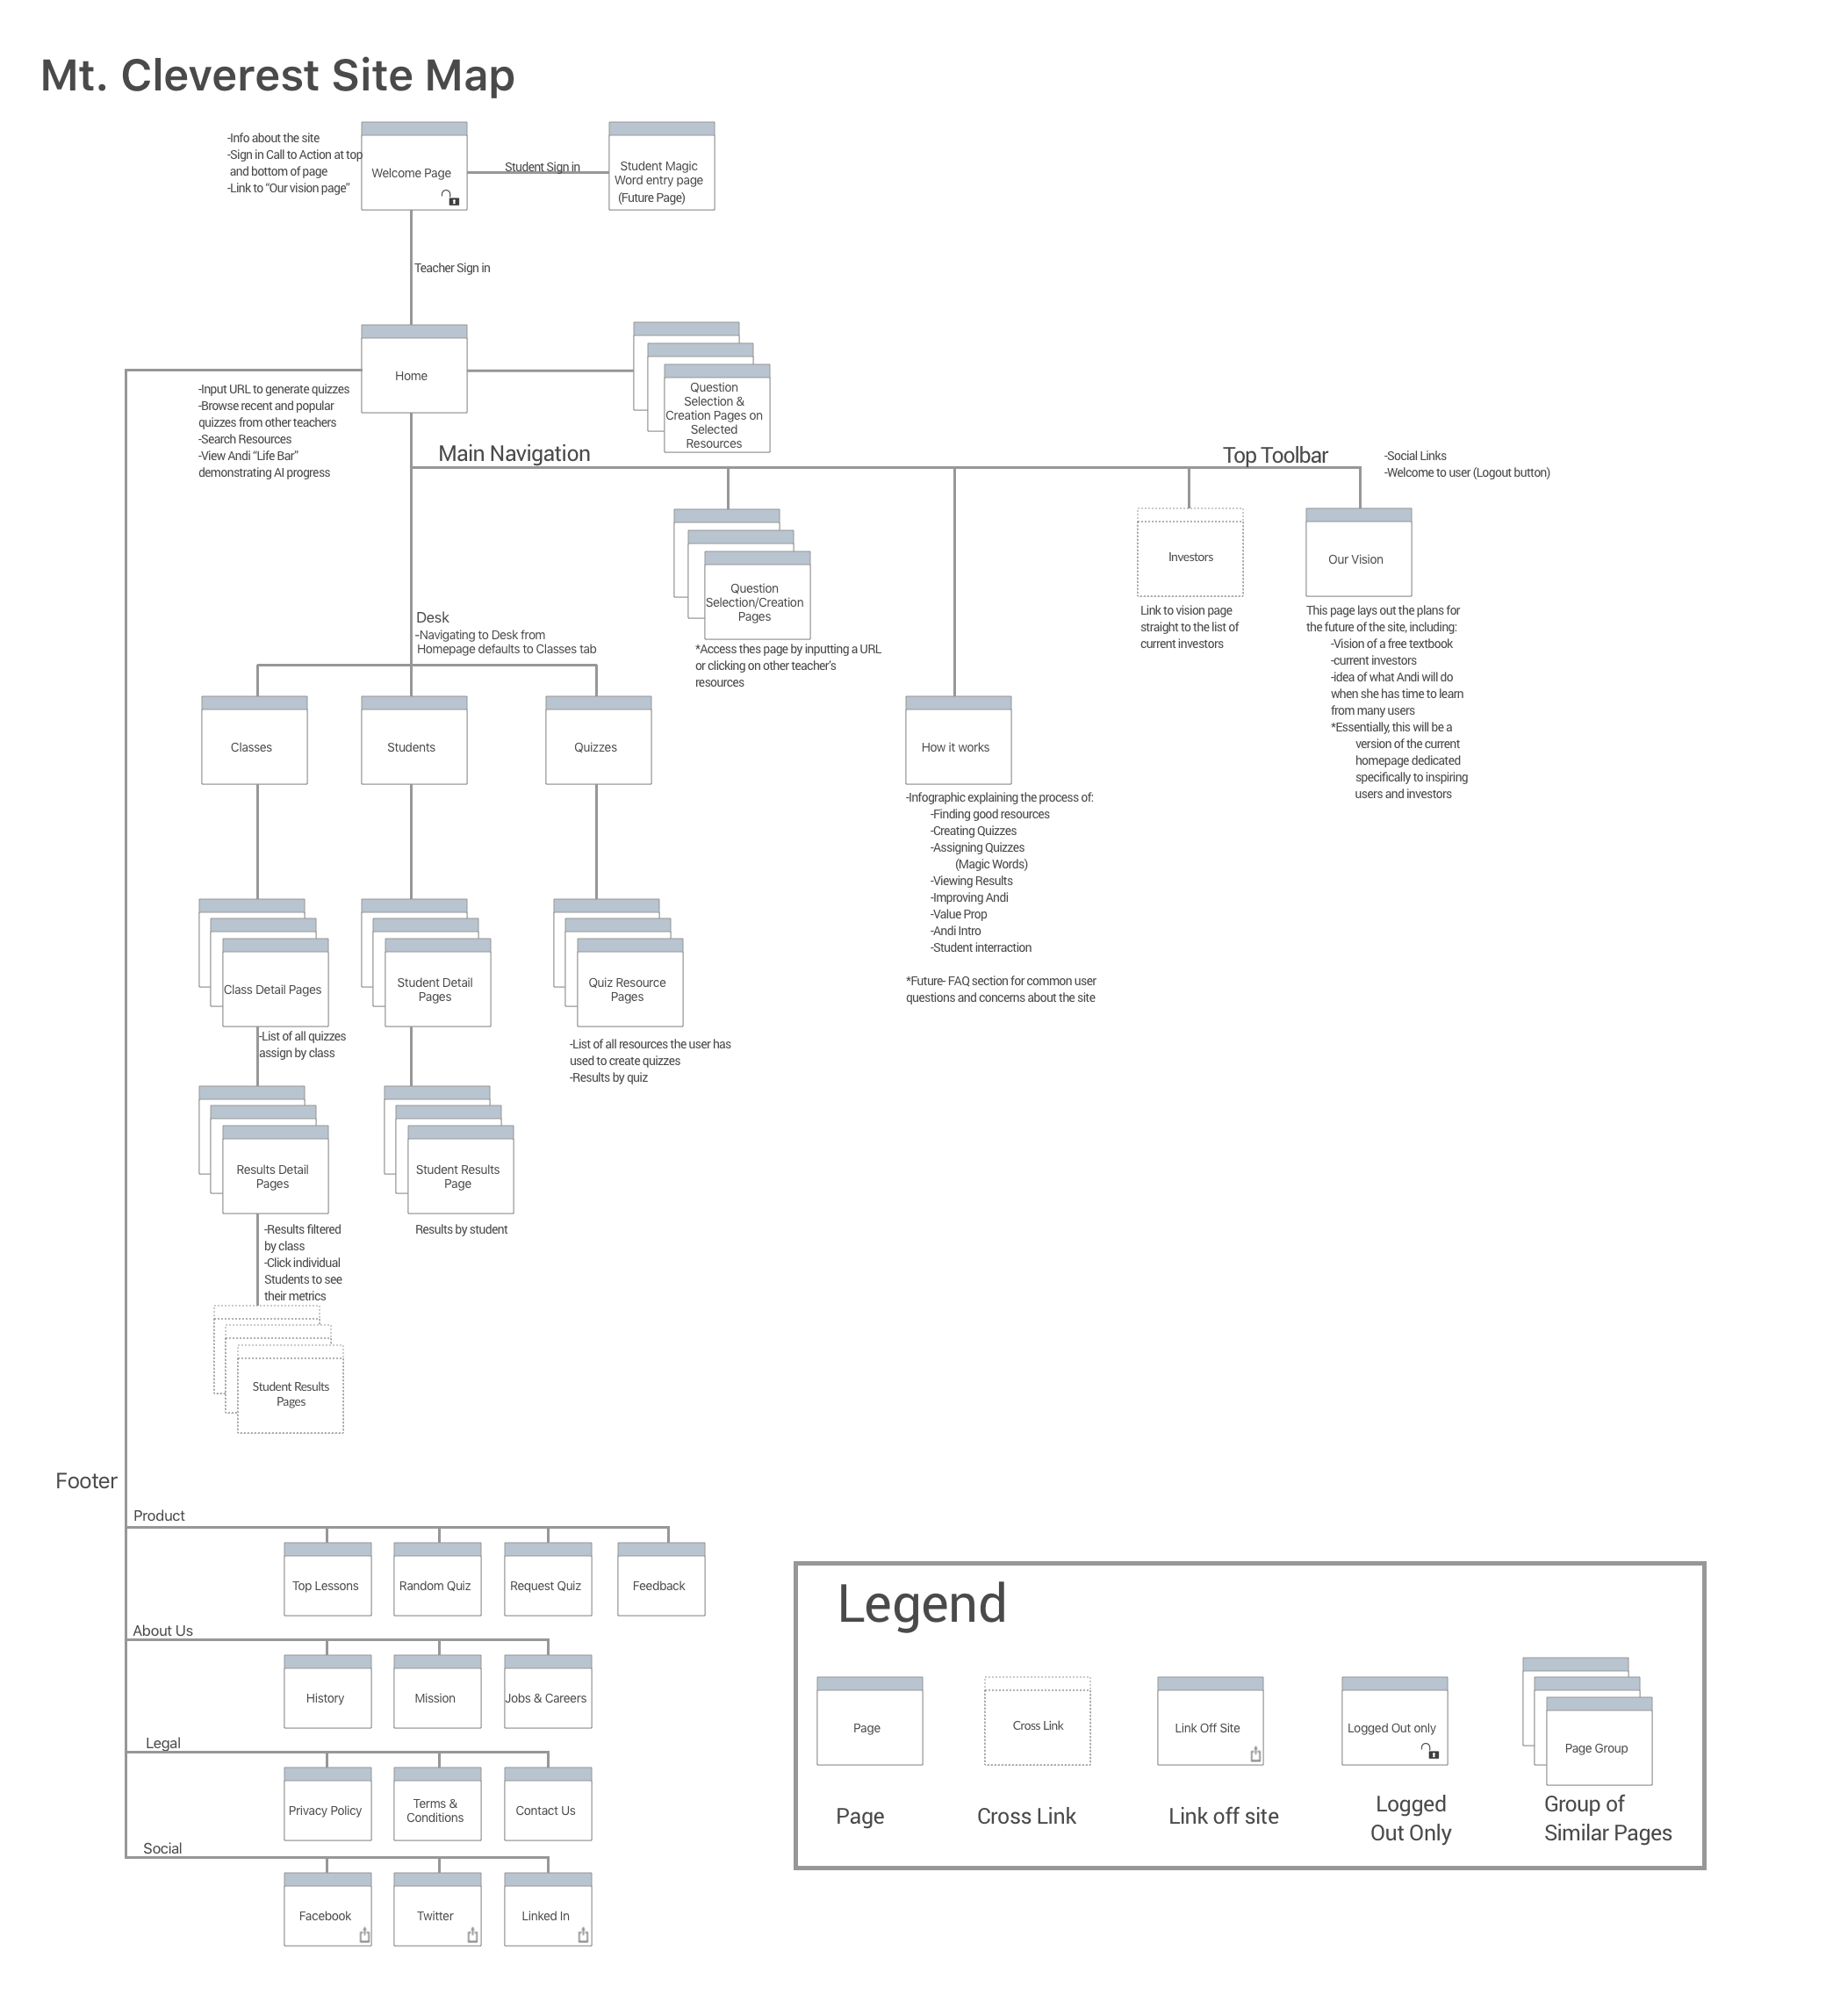 Final Version of the Sitemap we developed through the design and iteration process